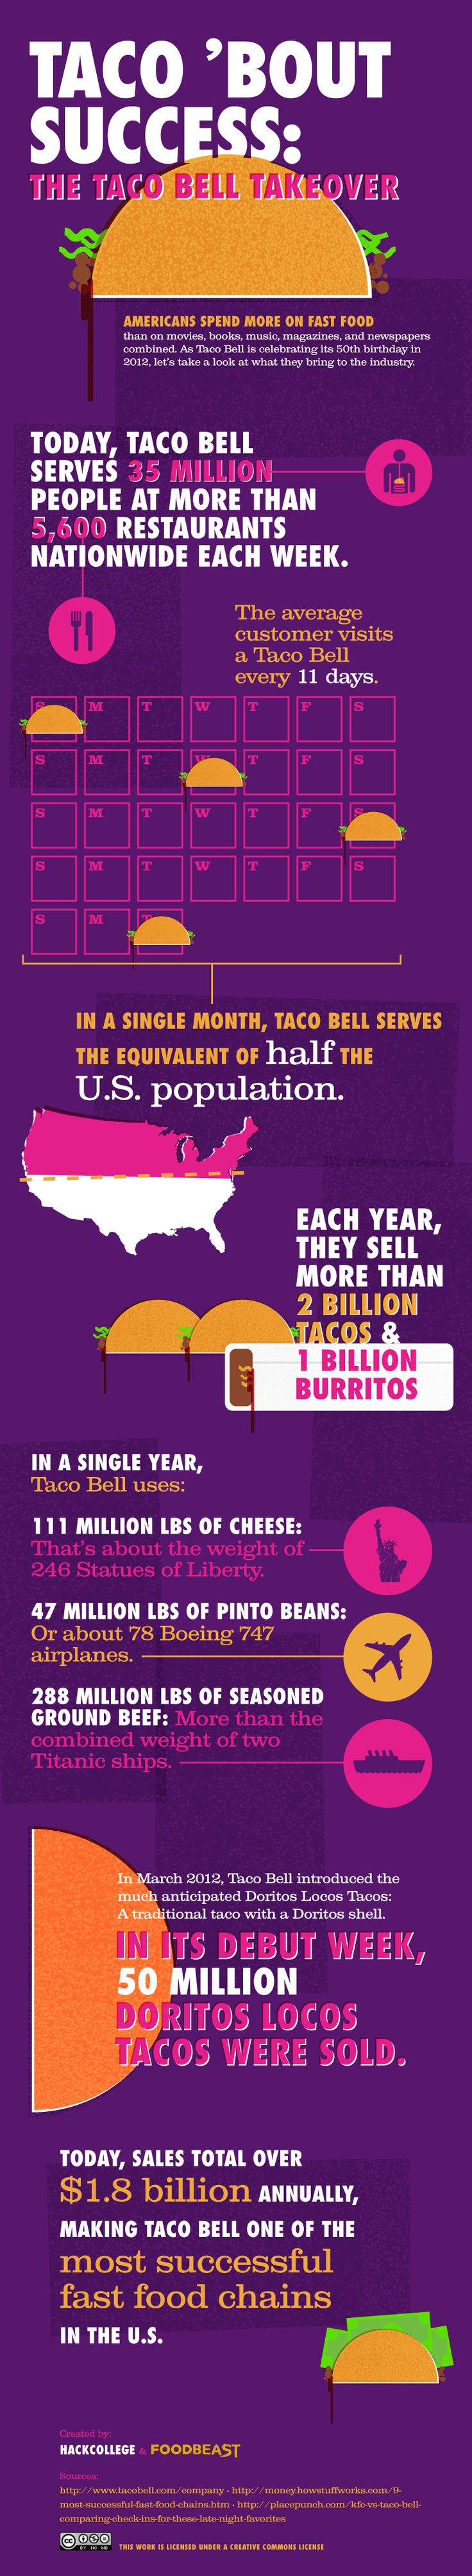 The Average #TacoBell Customer Visits Taco Bell Every 11 Days [INFOGRAPHIC] >